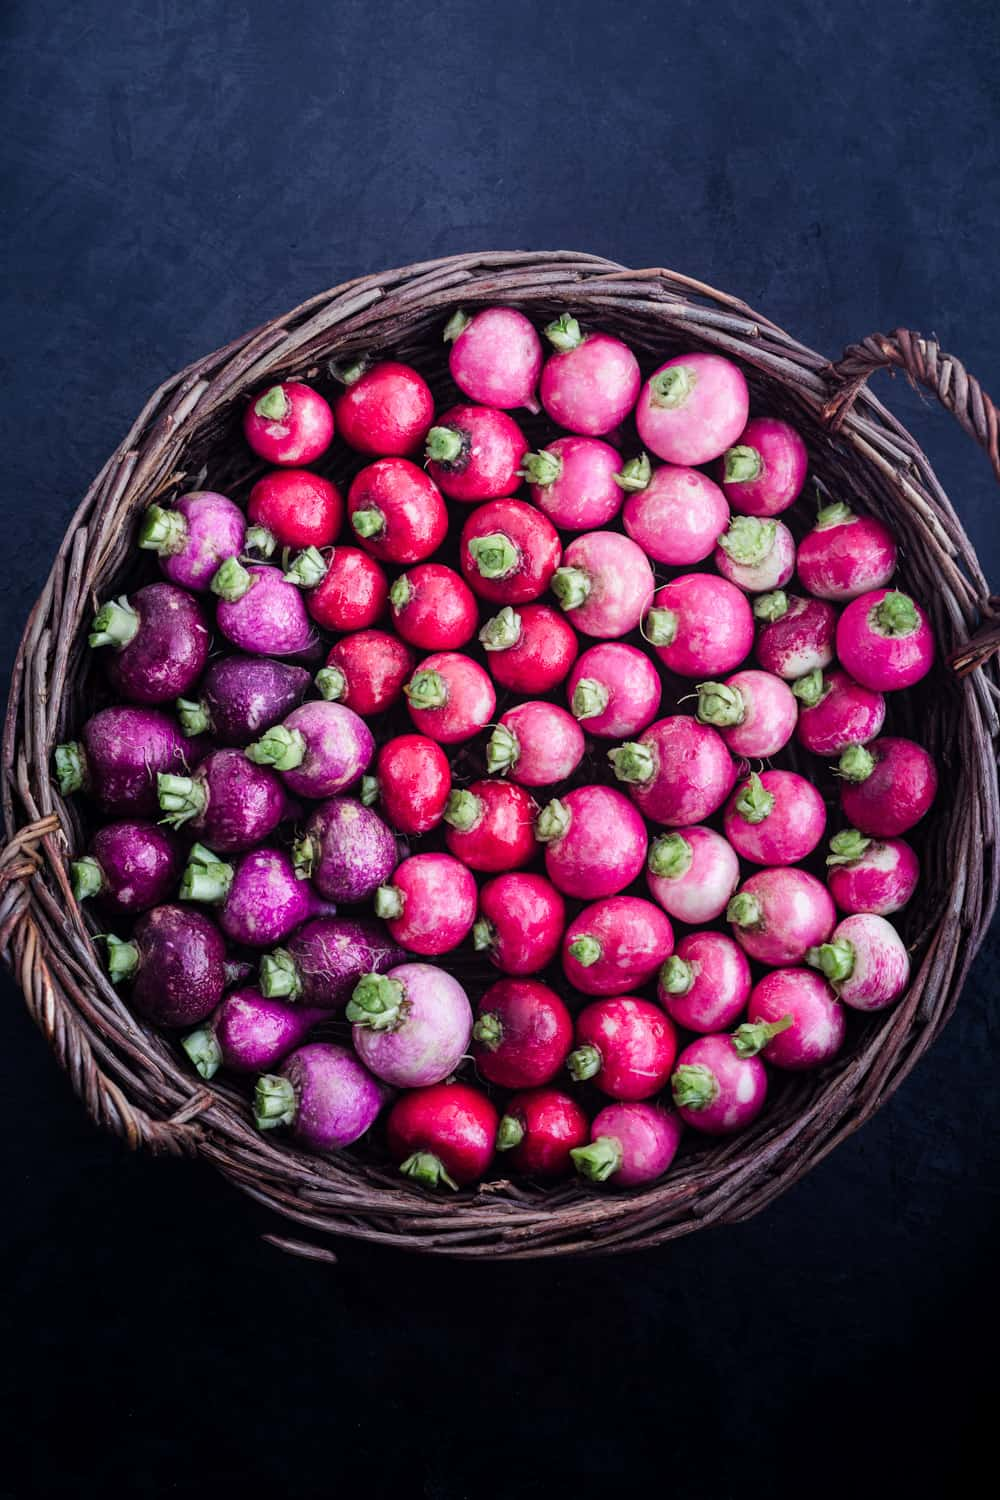 a basked of purple, red and pink round radishes, overhead shot on a black background